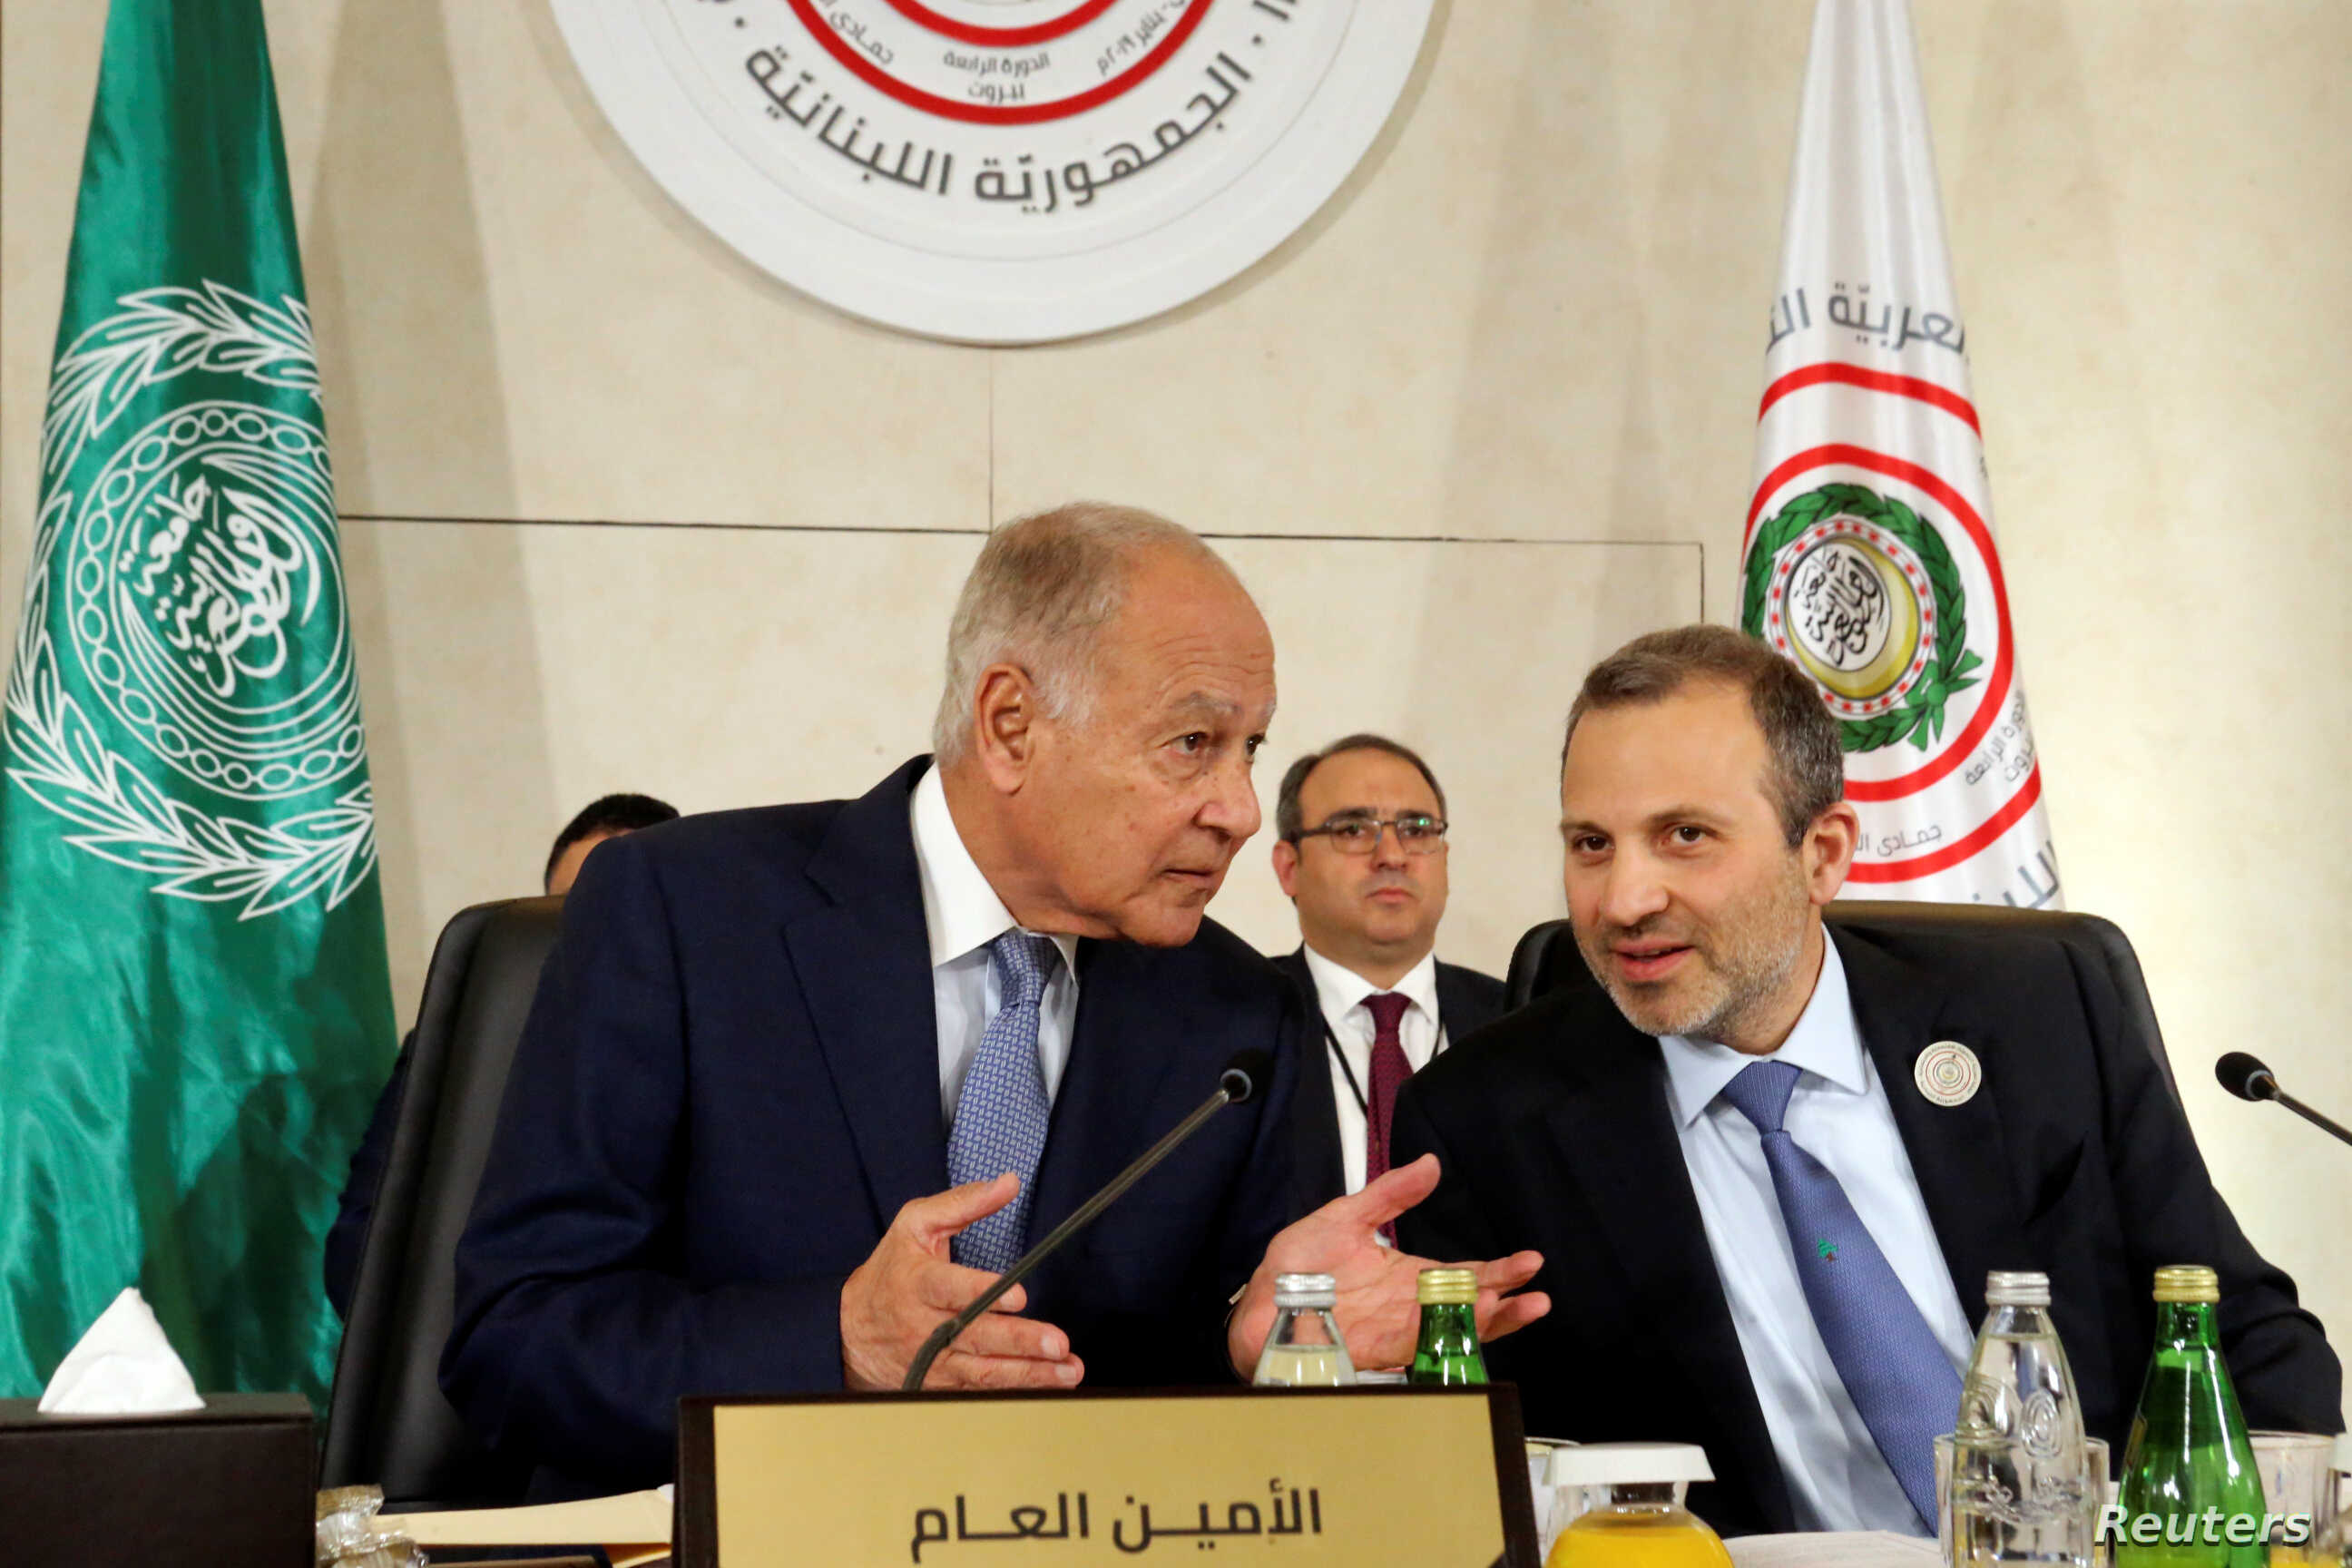 Arab League Secretary-General Ahmed Abul Gheit gestures as he talks with Lebanese Foreign Minister Gebran Bassil, at a pre Arab Economic and Social Development summit meeting in Beirut, Lebanon January 18, 2019.